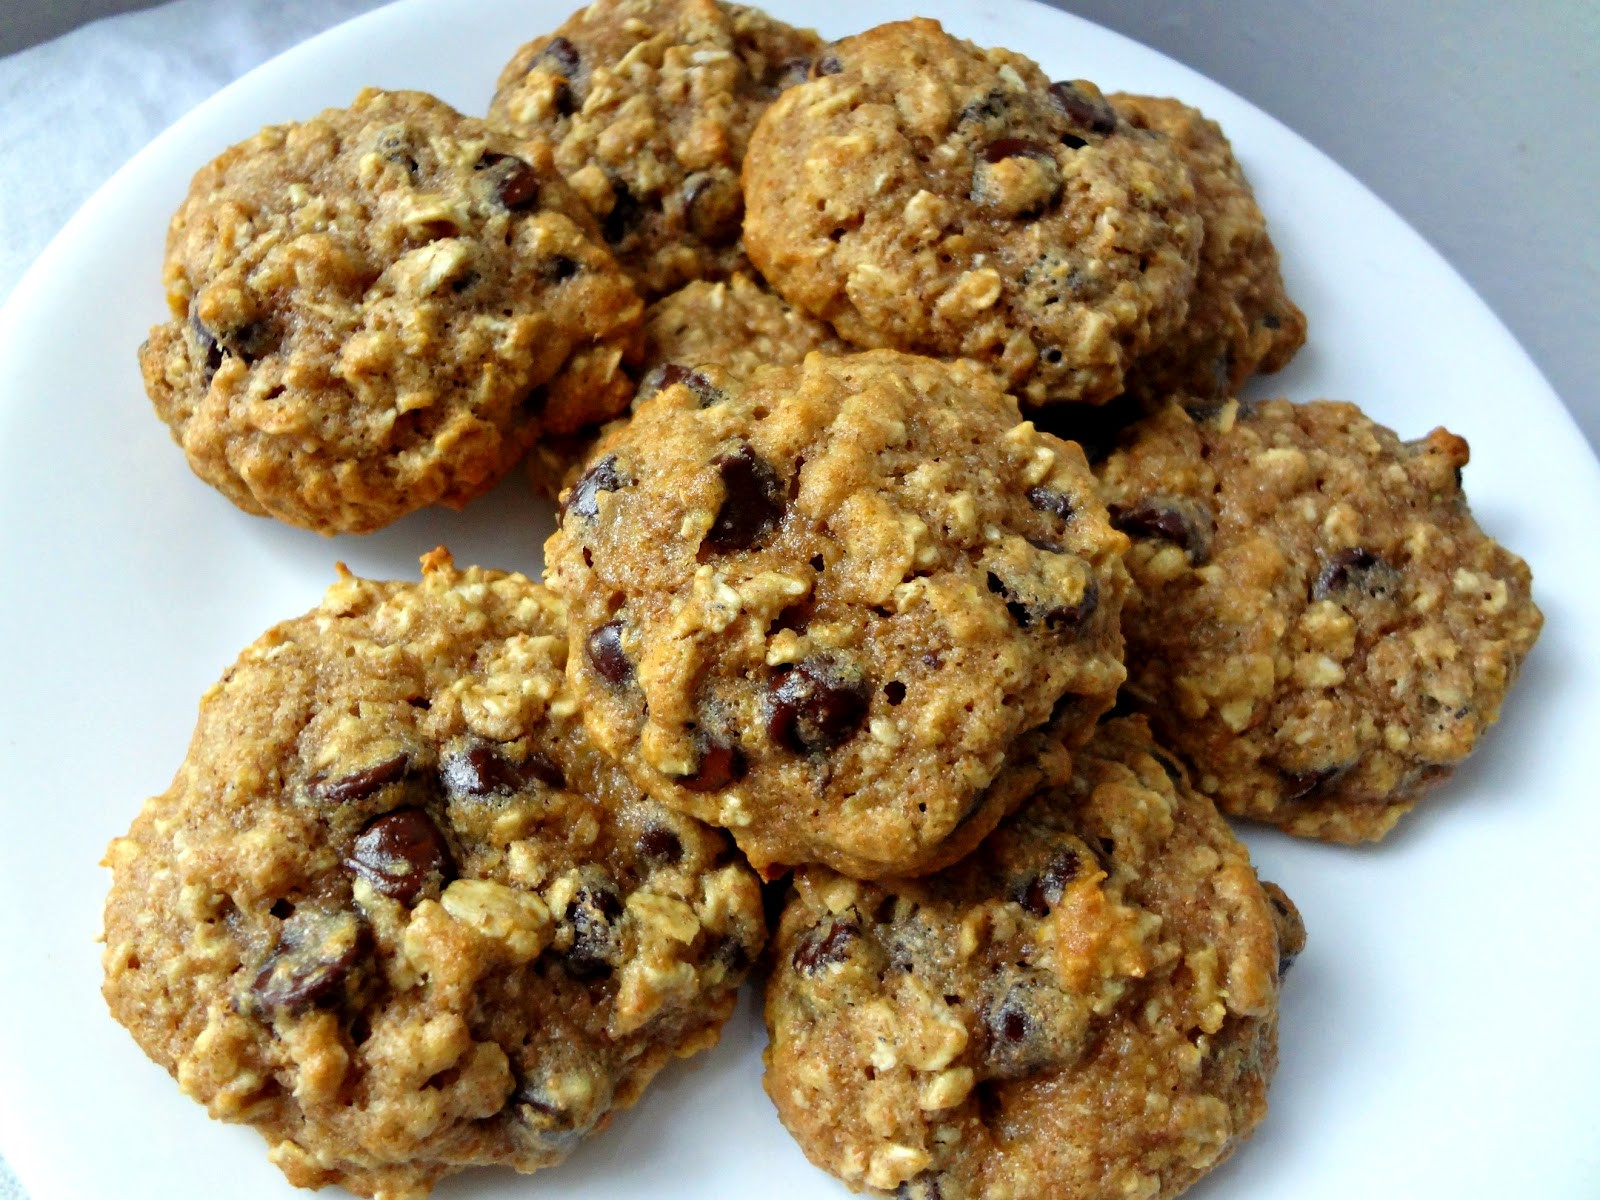 Healthy Oatmeal Coconut Chocolate Chip Cookies  The Cooking Actress Healthy Oatmeal Chocolate Chip Cookies